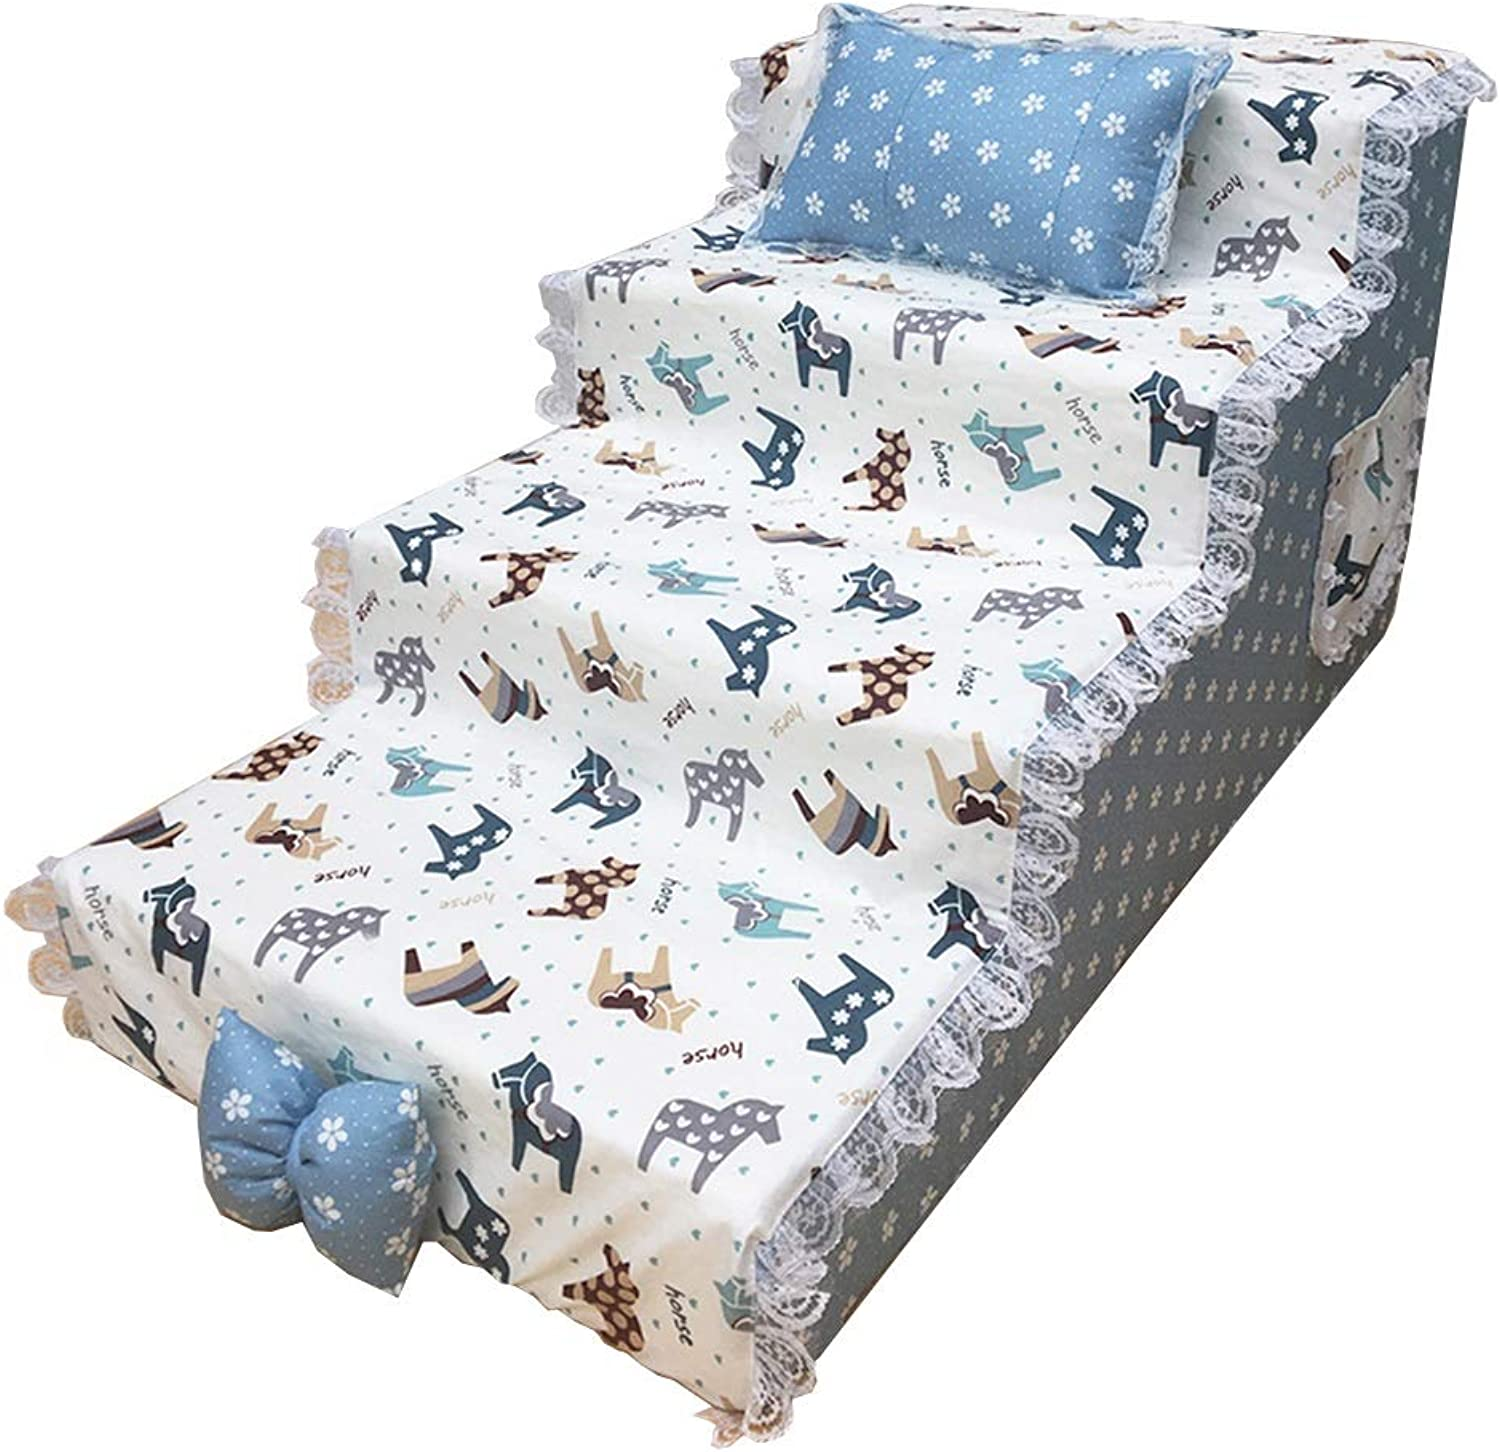 Pet stairs Dog Steps For High Bed, Portable 4 Steps Ladder For Cats Animals Doggy Ladder For Tall Couch Bed (Size   80  40  50cm)